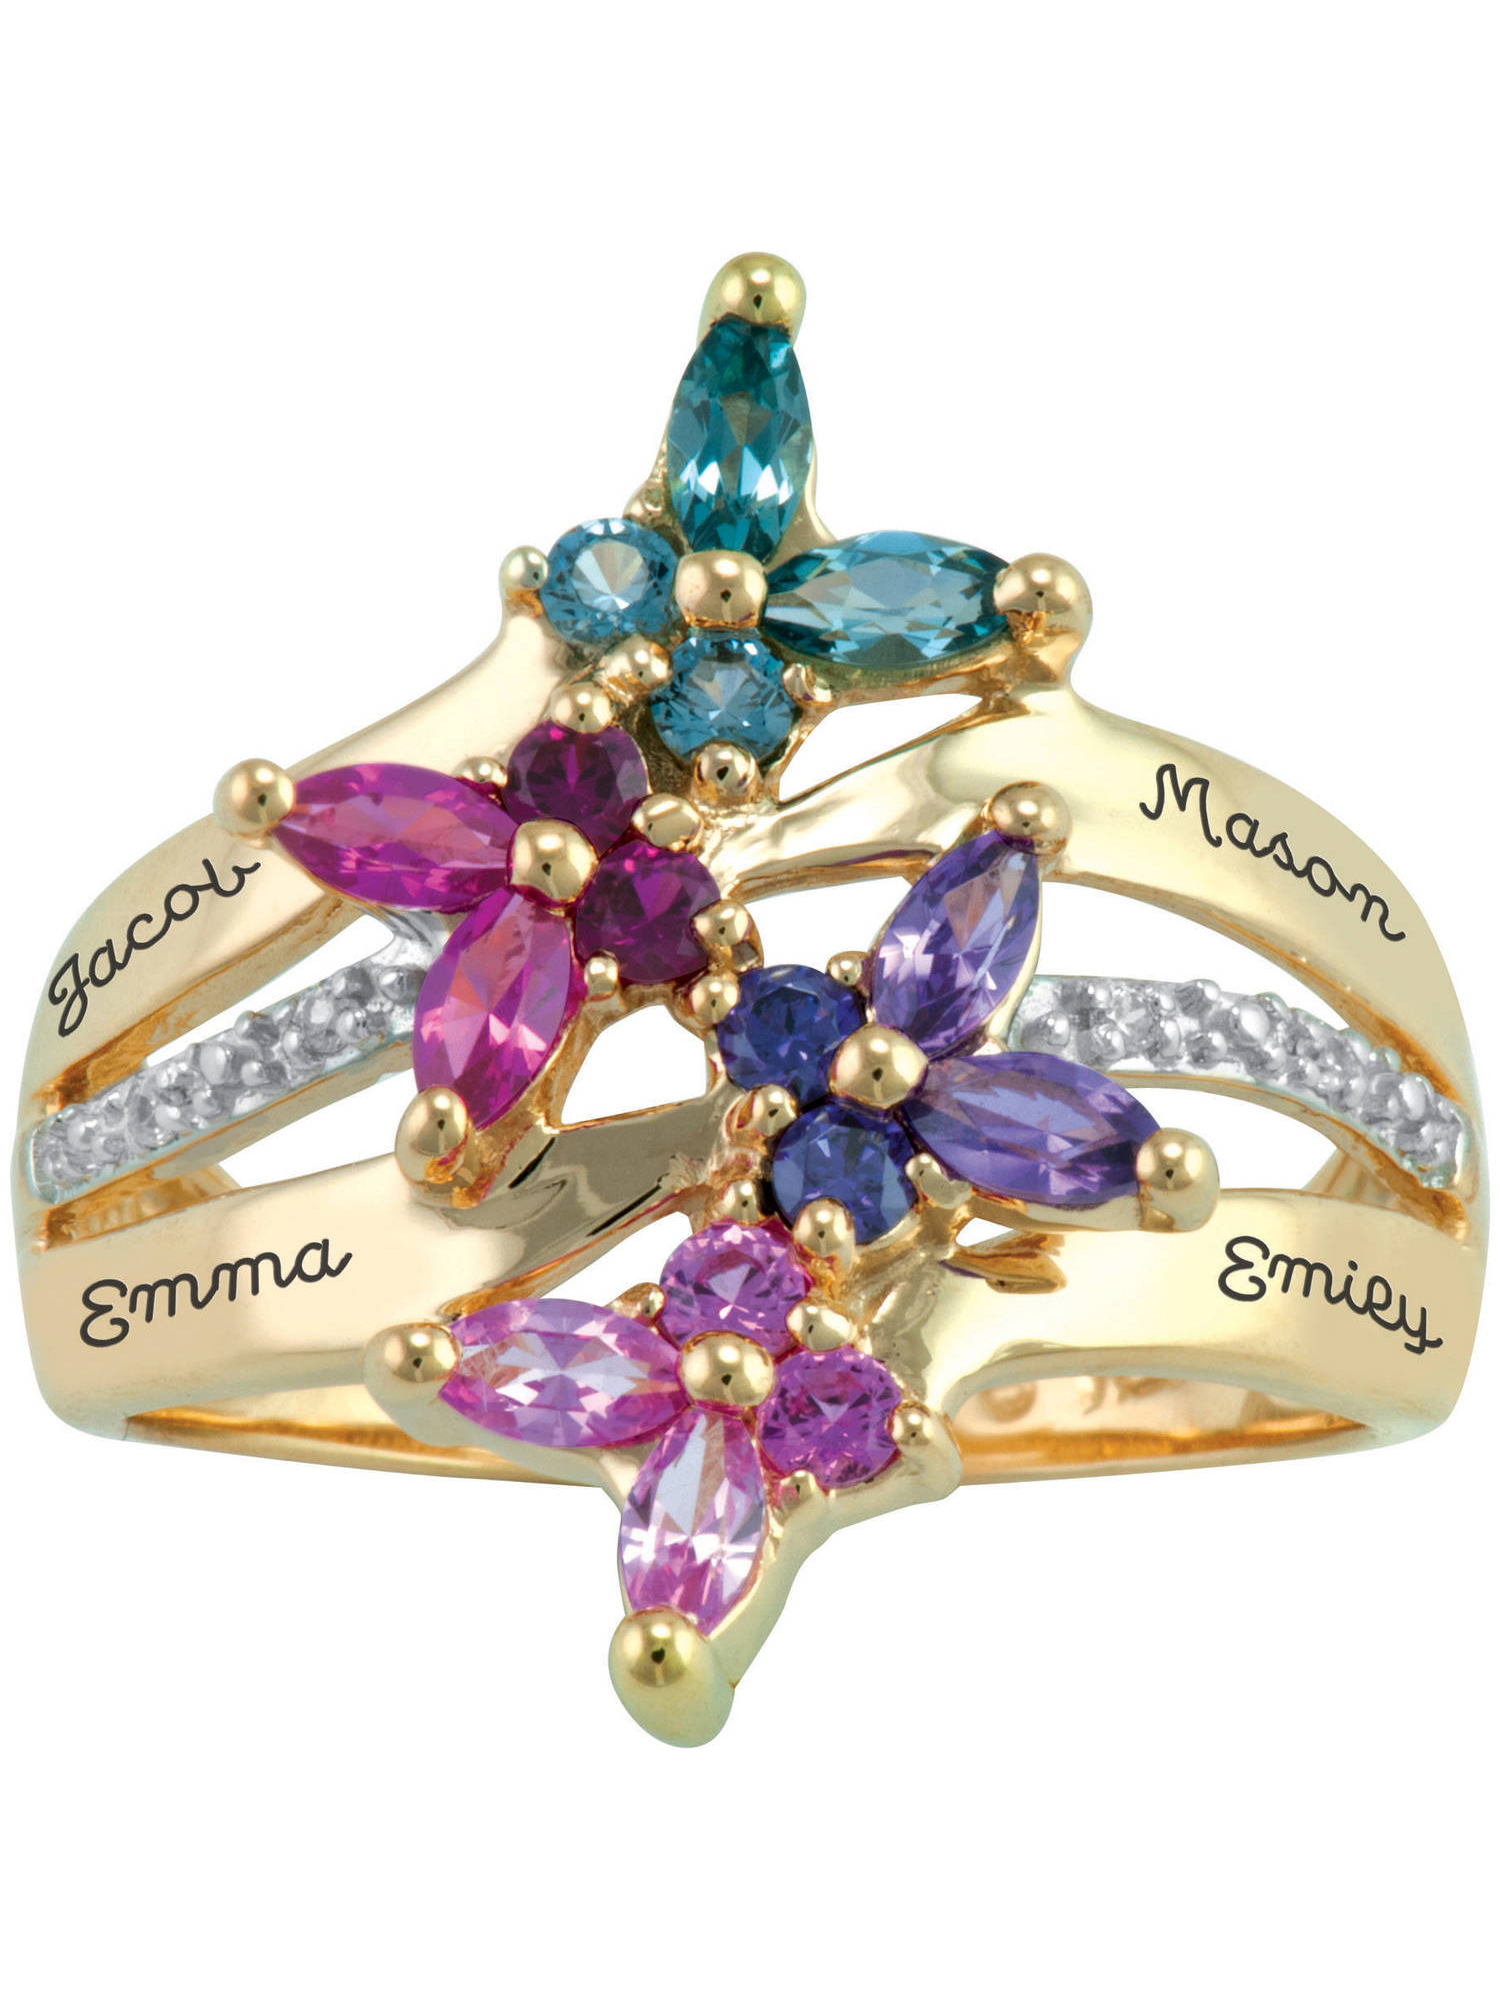 Keepsake Personalized Family Jewelry Meadow Birthstone Mother's Ring available in Sterling Silver, 10kt Gold over Sterling Silver, 10kt or 14kt Yellow or White Gold